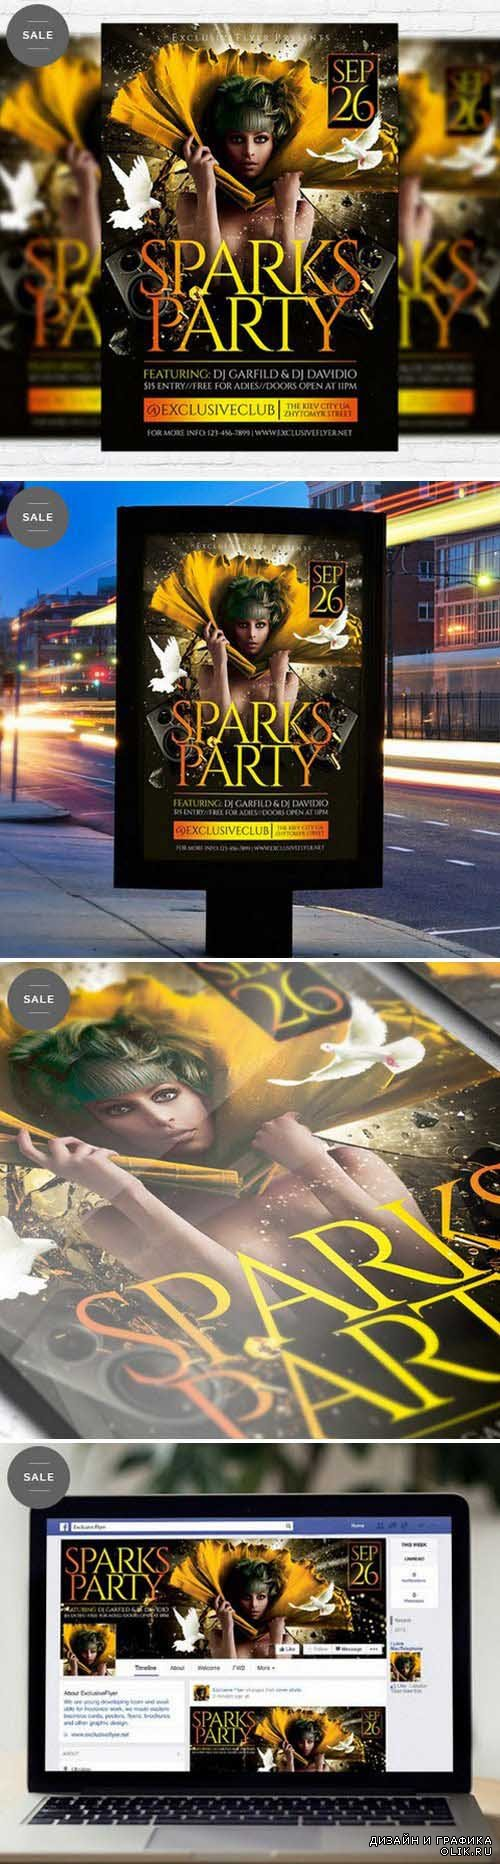 Flyer Template - Sparks Party + Facebook Cover